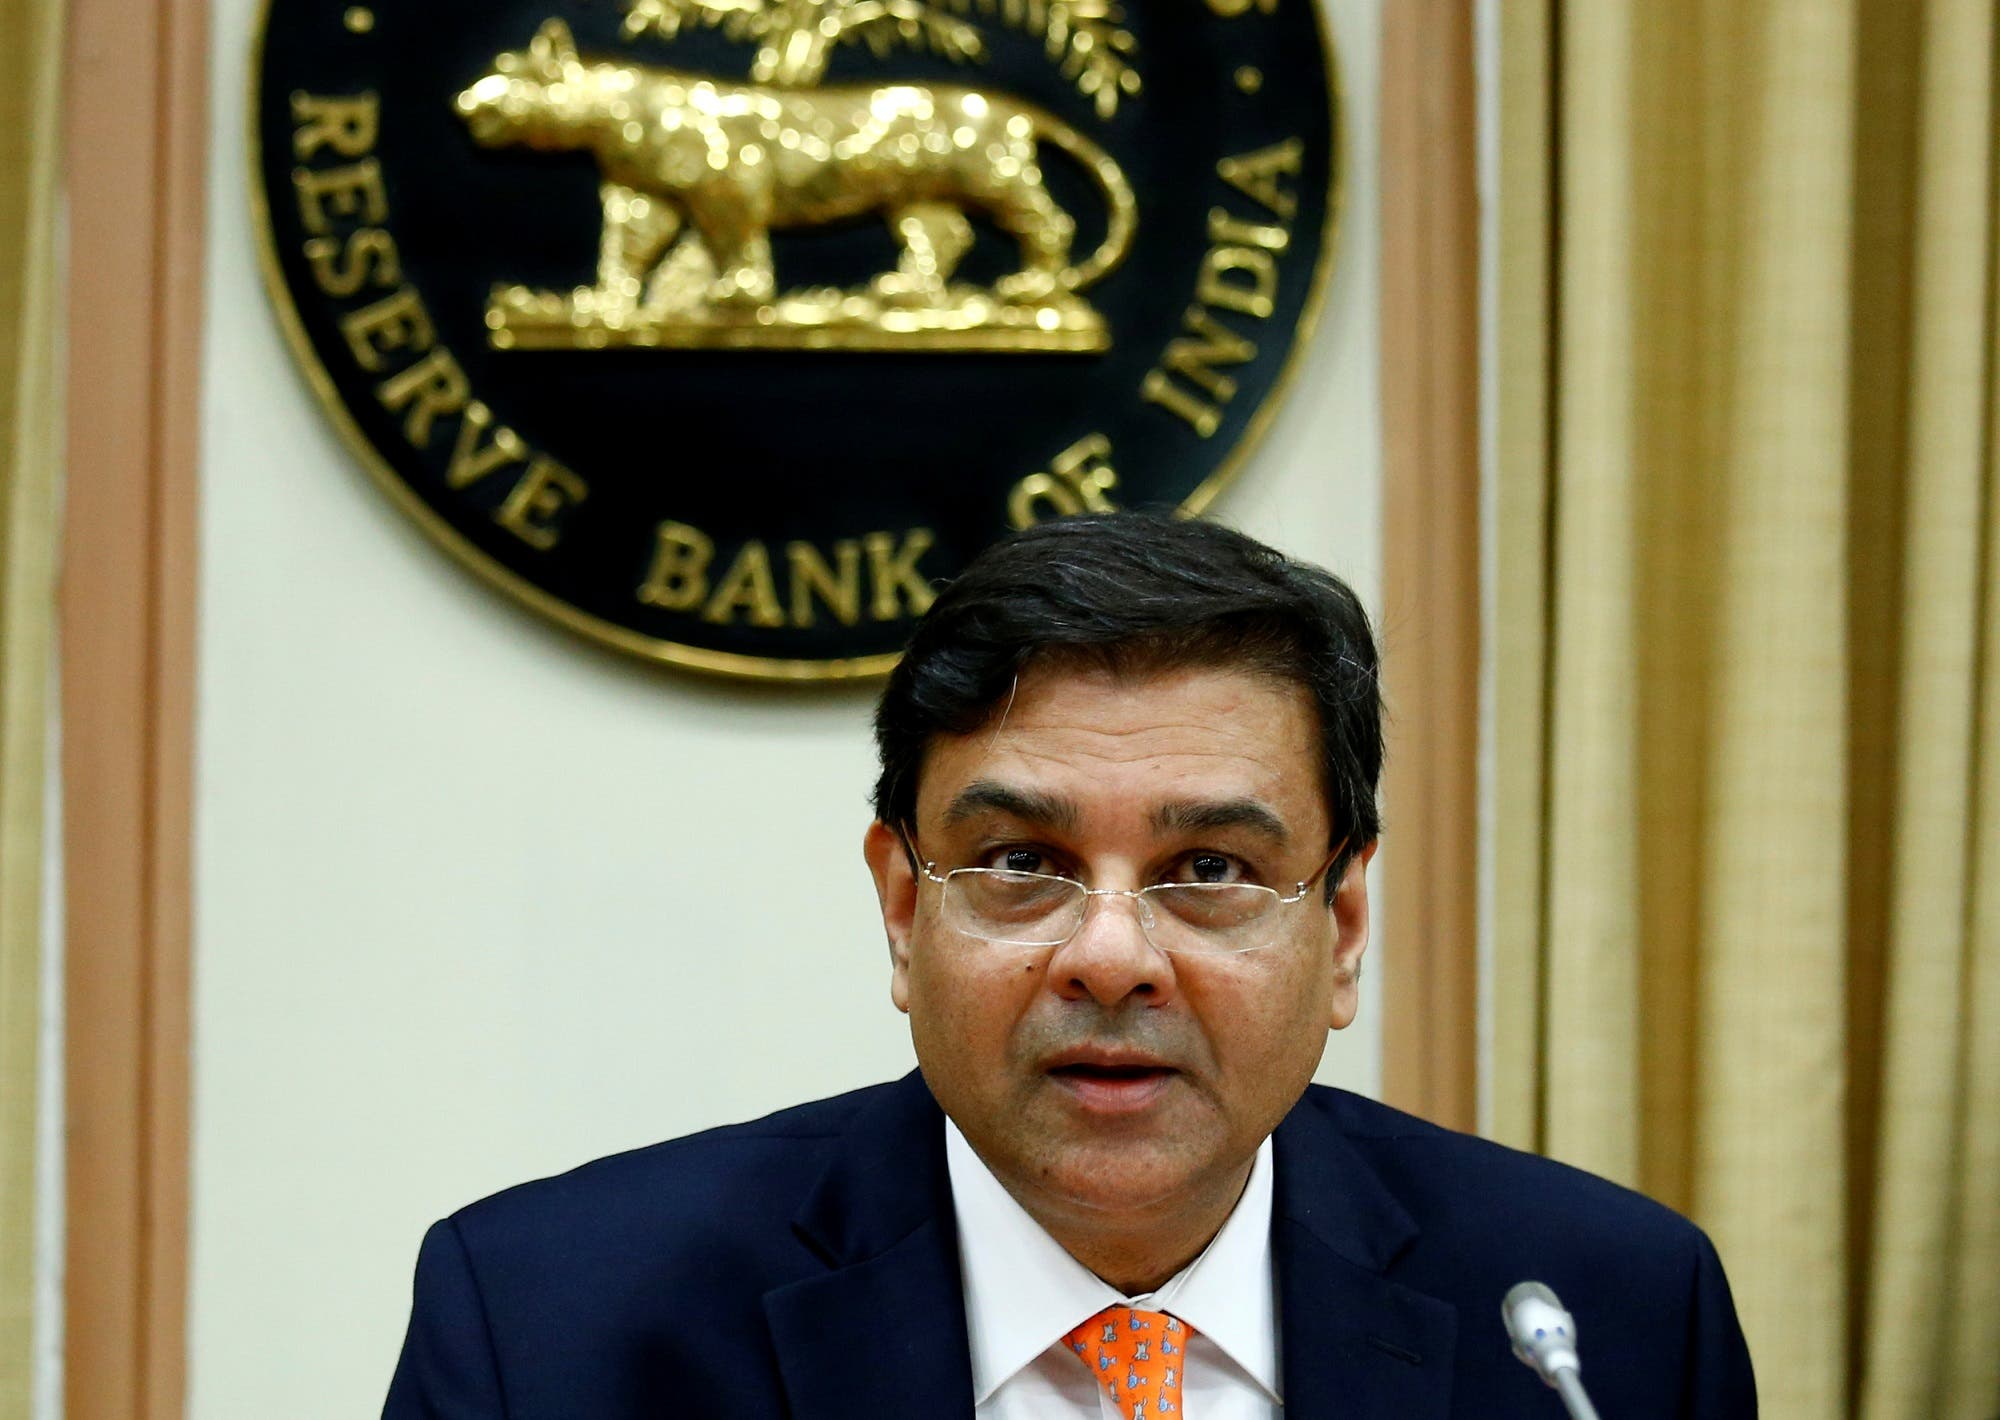 Urjit patel india apex bank. (Reuters)